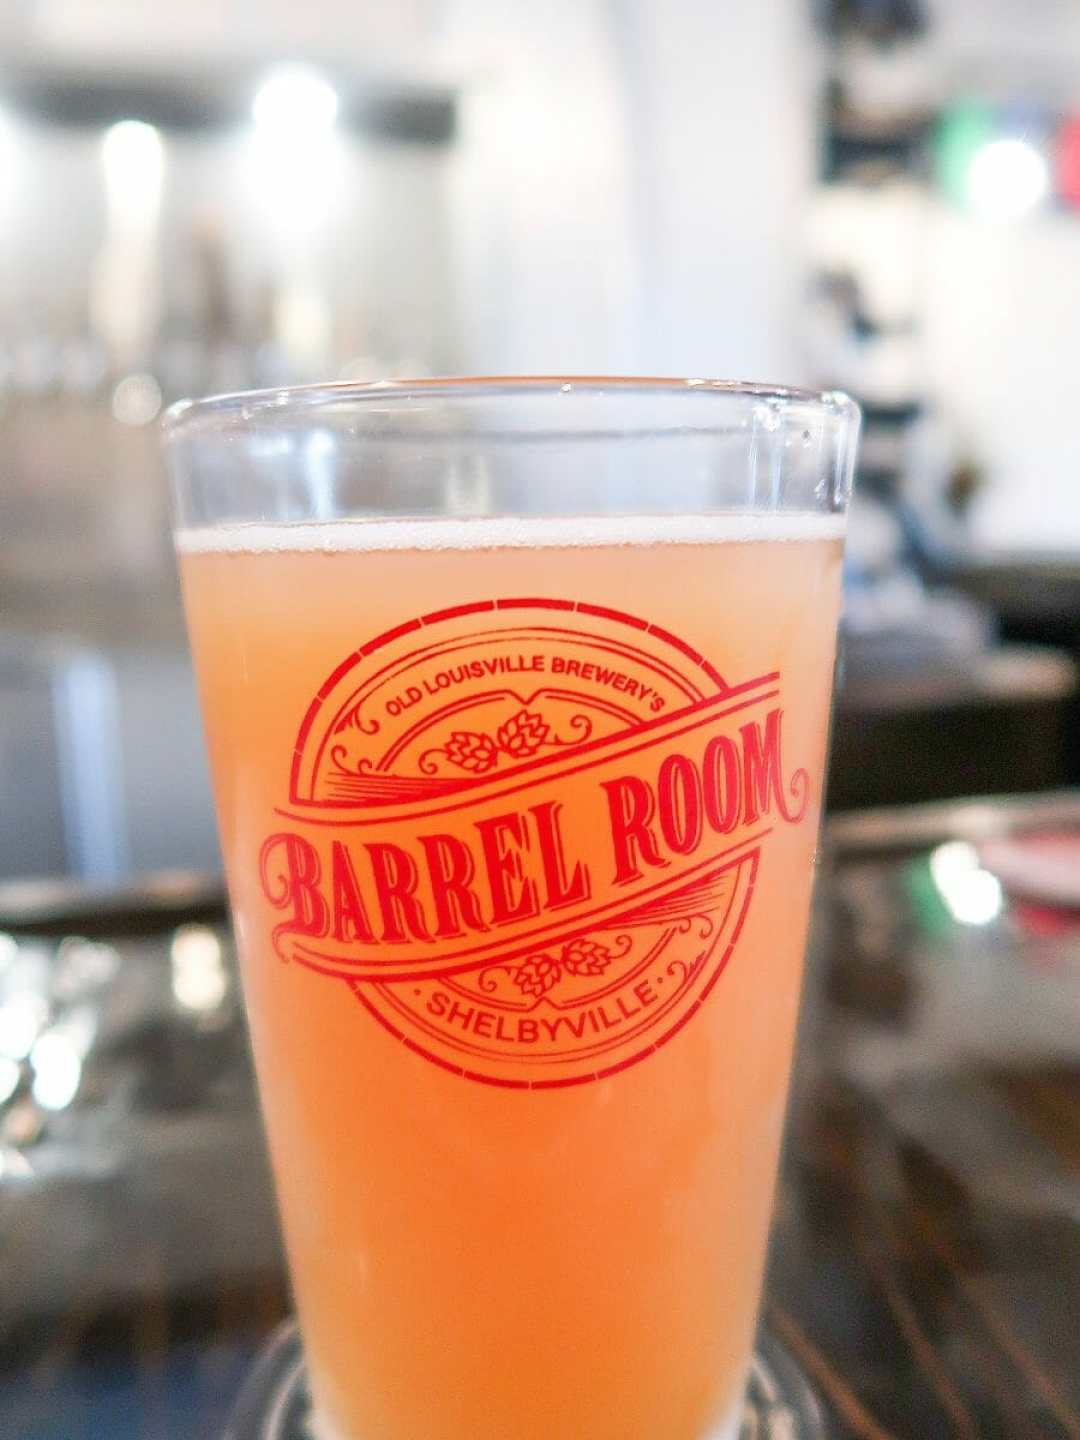 The Barrel Room In Shelbyville, KY